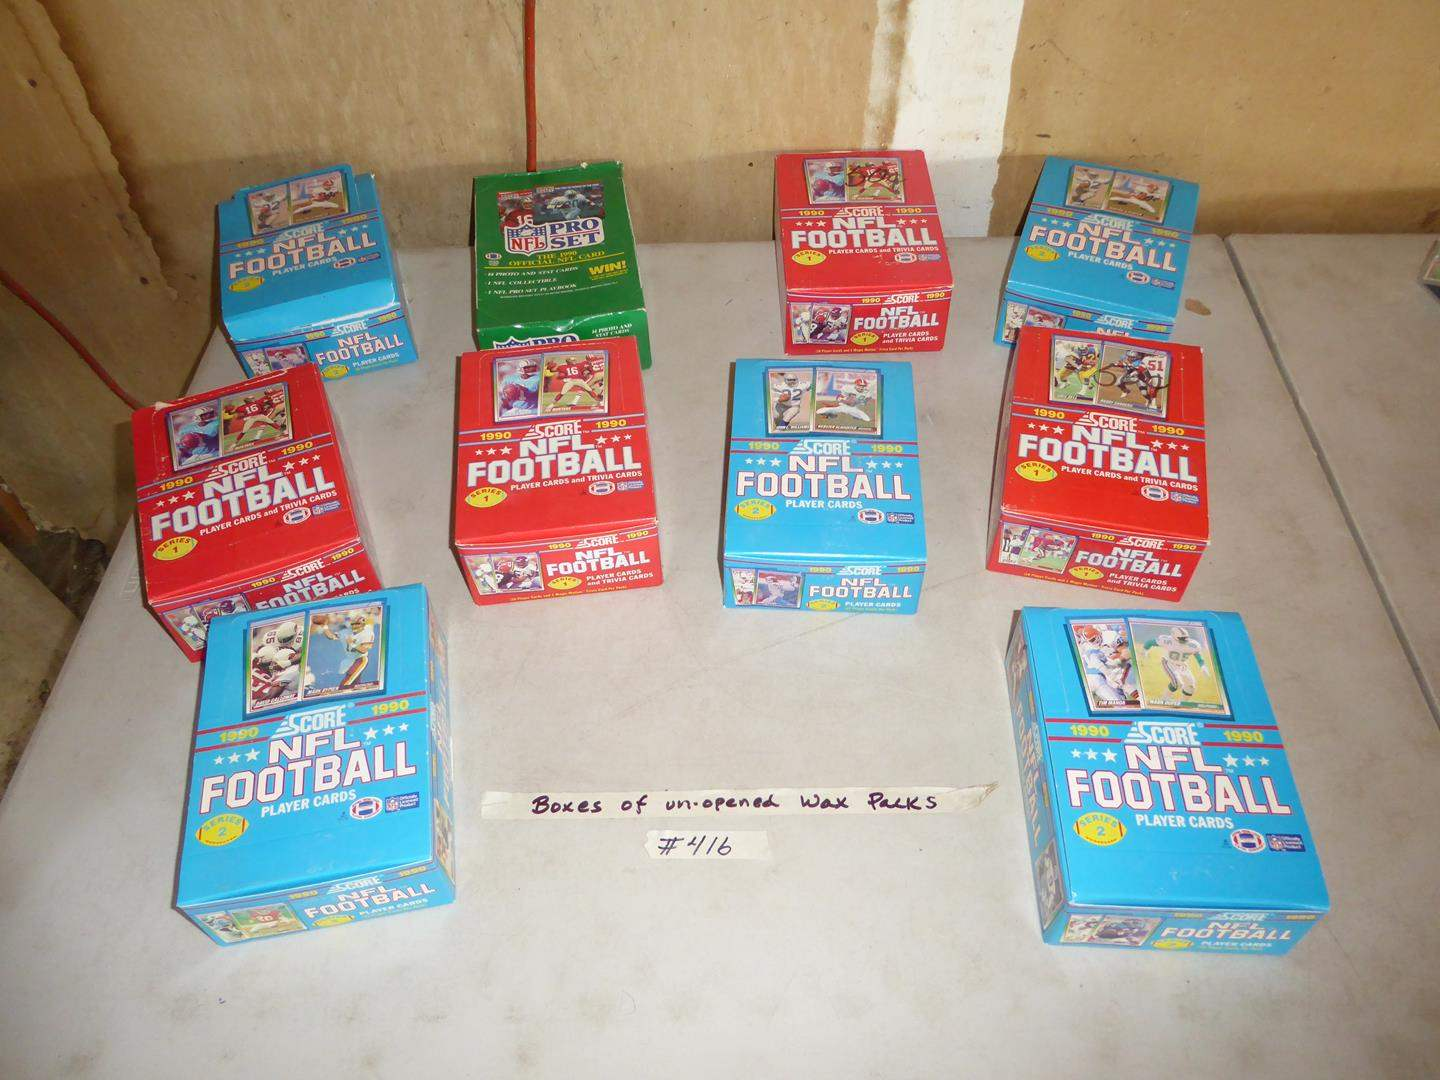 Lot # 416 - 10 Boxes Unopened 1990 NFL Football Cards Wax Packs (main image)